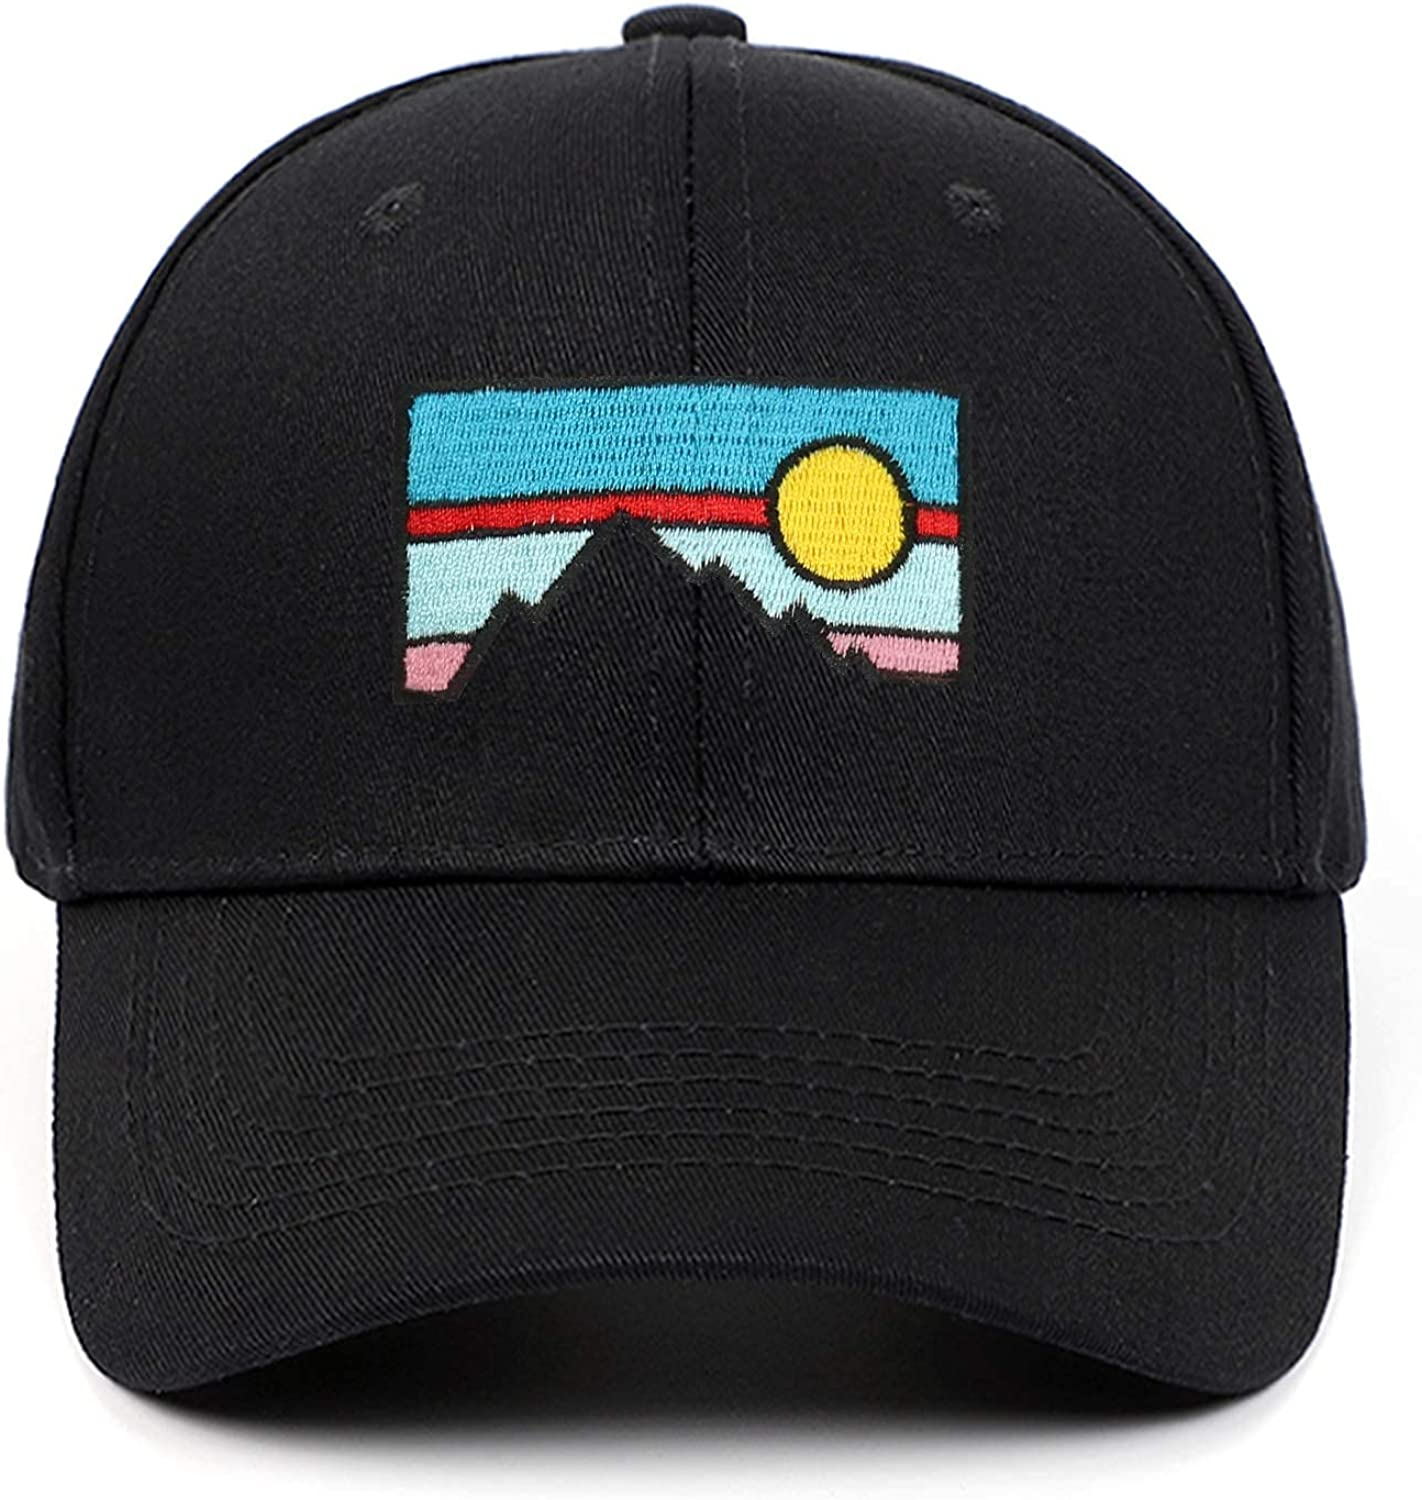 Embroidered Sunset and Dusk Caps Scenery Men Women Baseball Cap Pure Color Snapback Hat